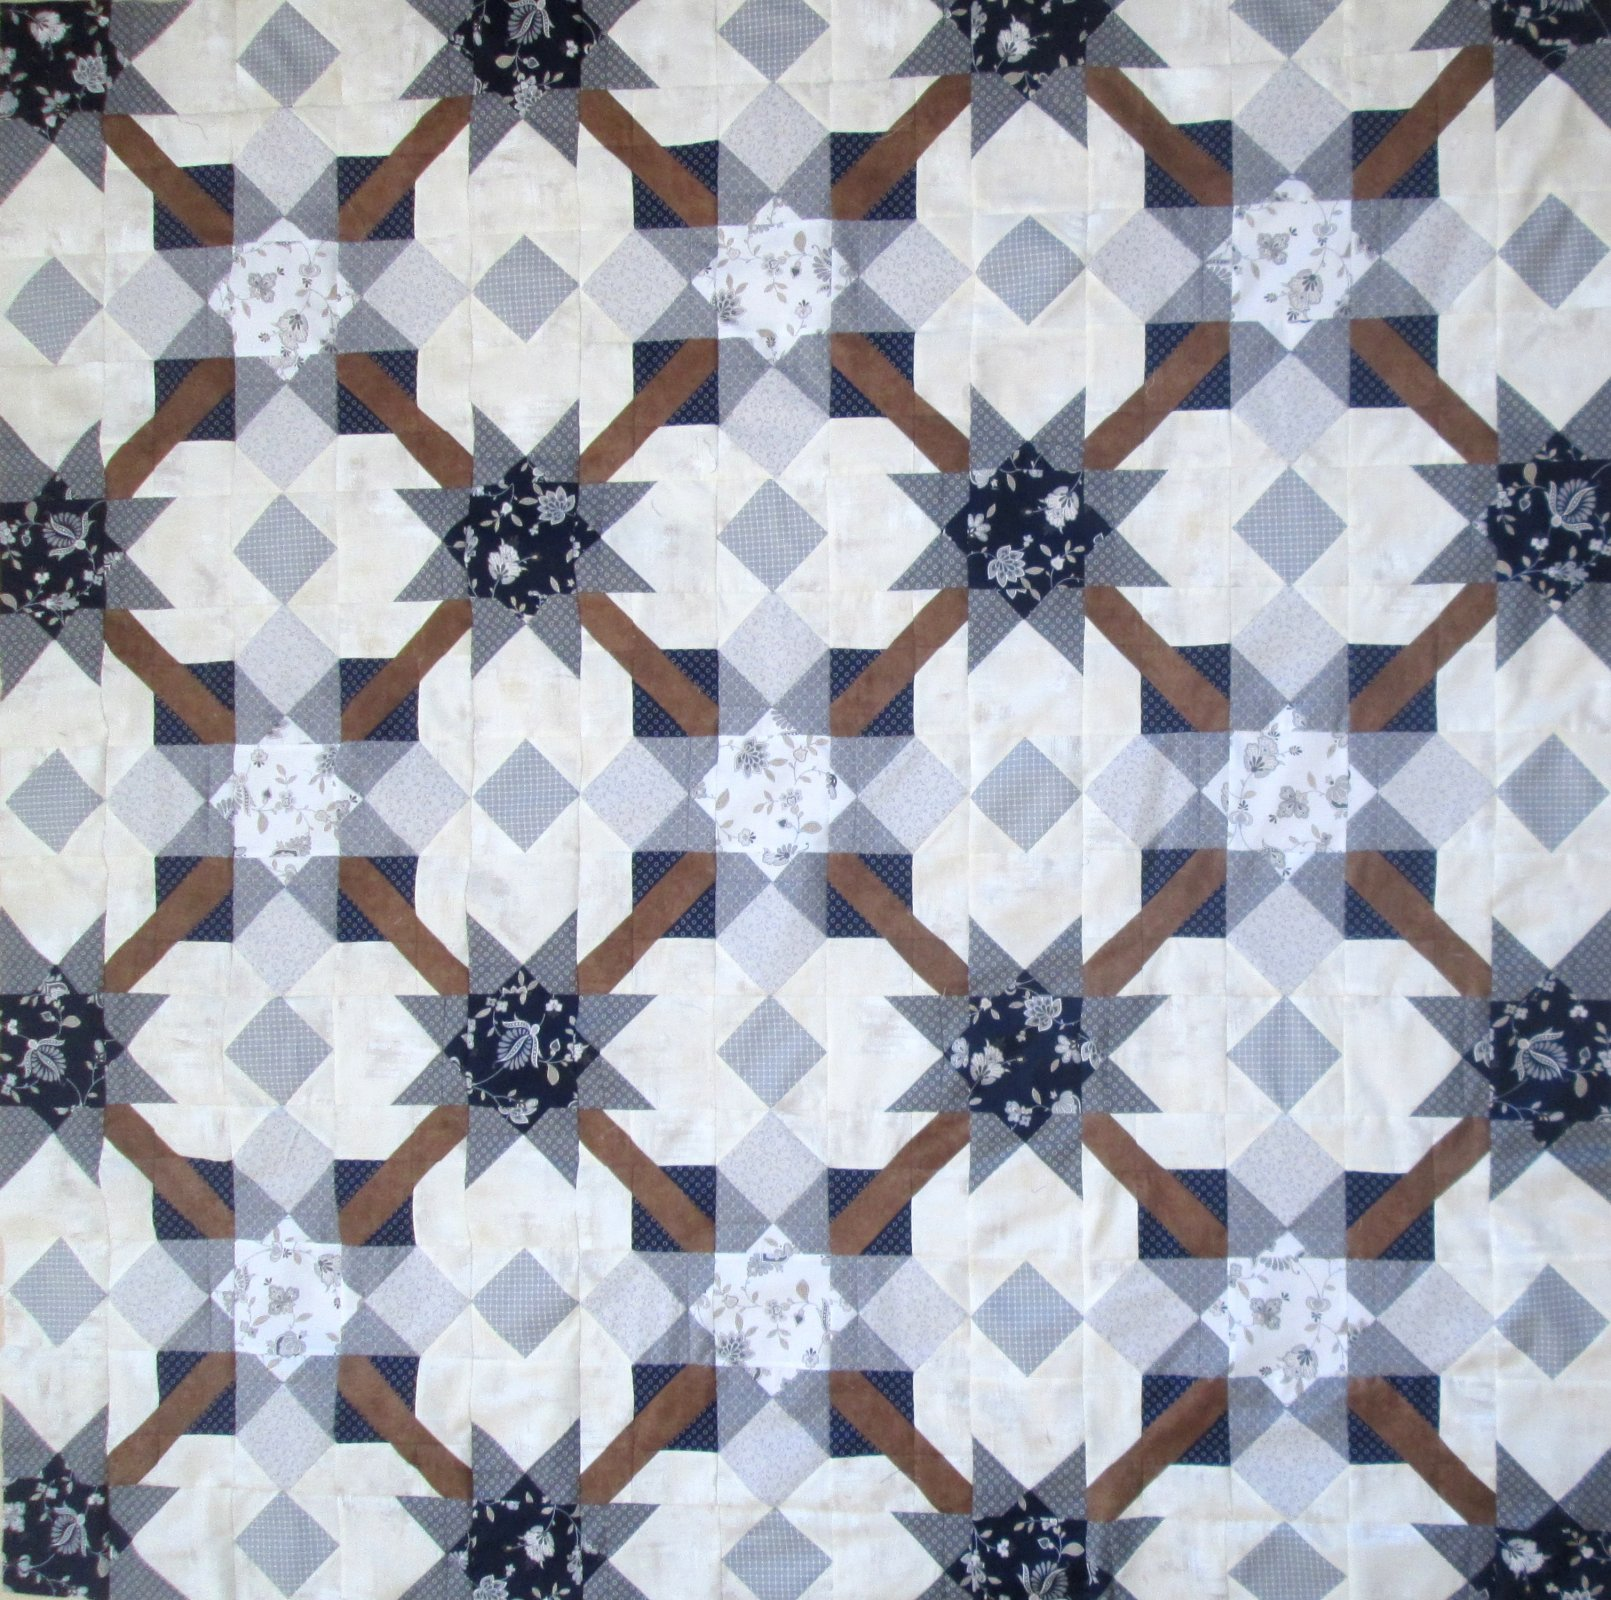 Special Edition Gathering Quilt Kit pattern by Cora's Quilts